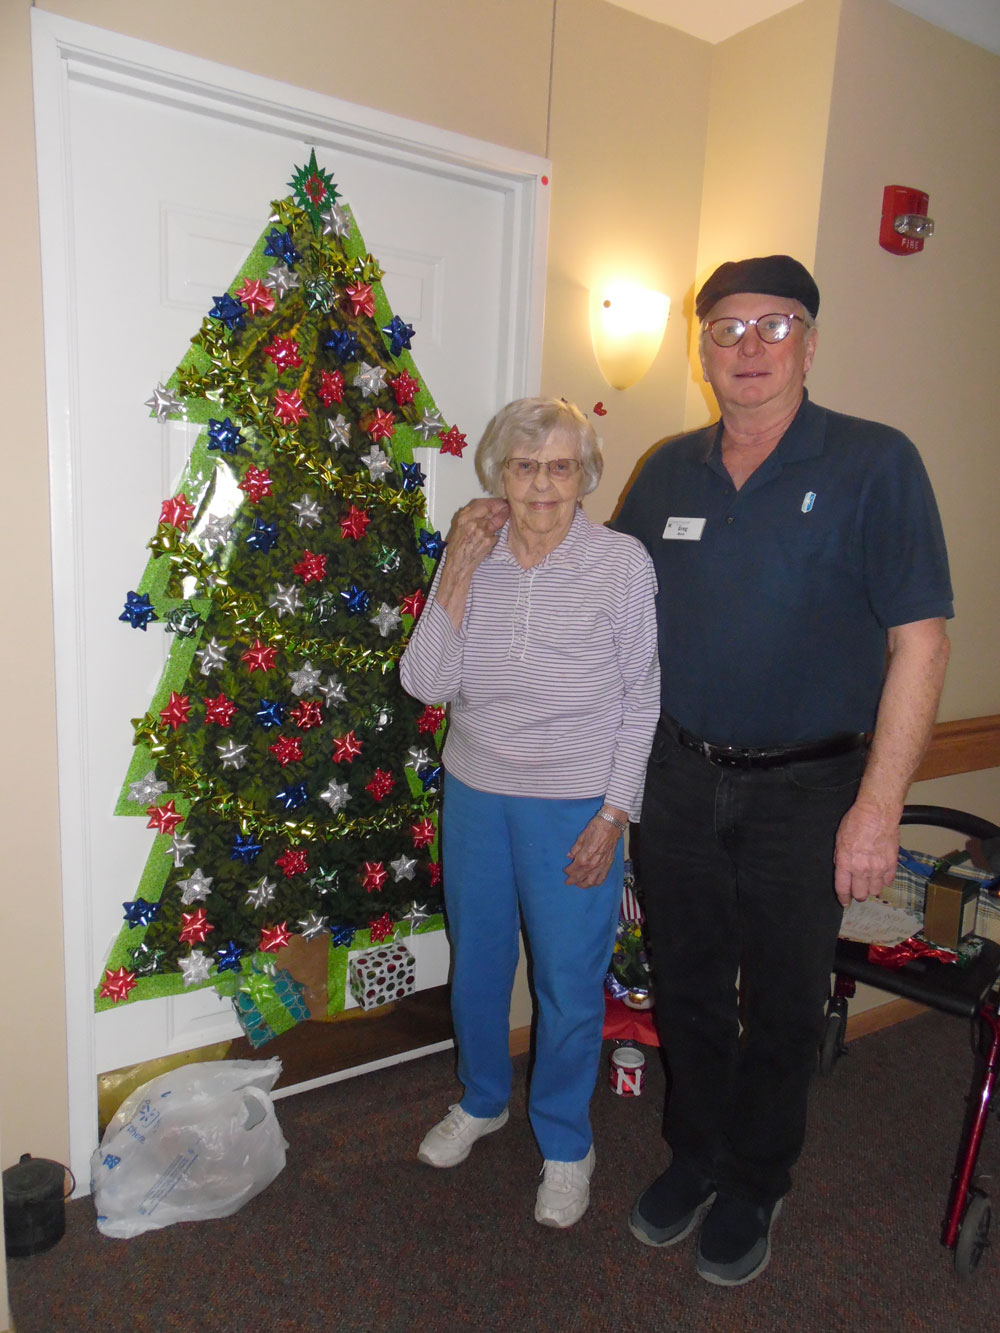 A resident and staff member pose in front of a decorated door at Immanuel Courtyard senior living community